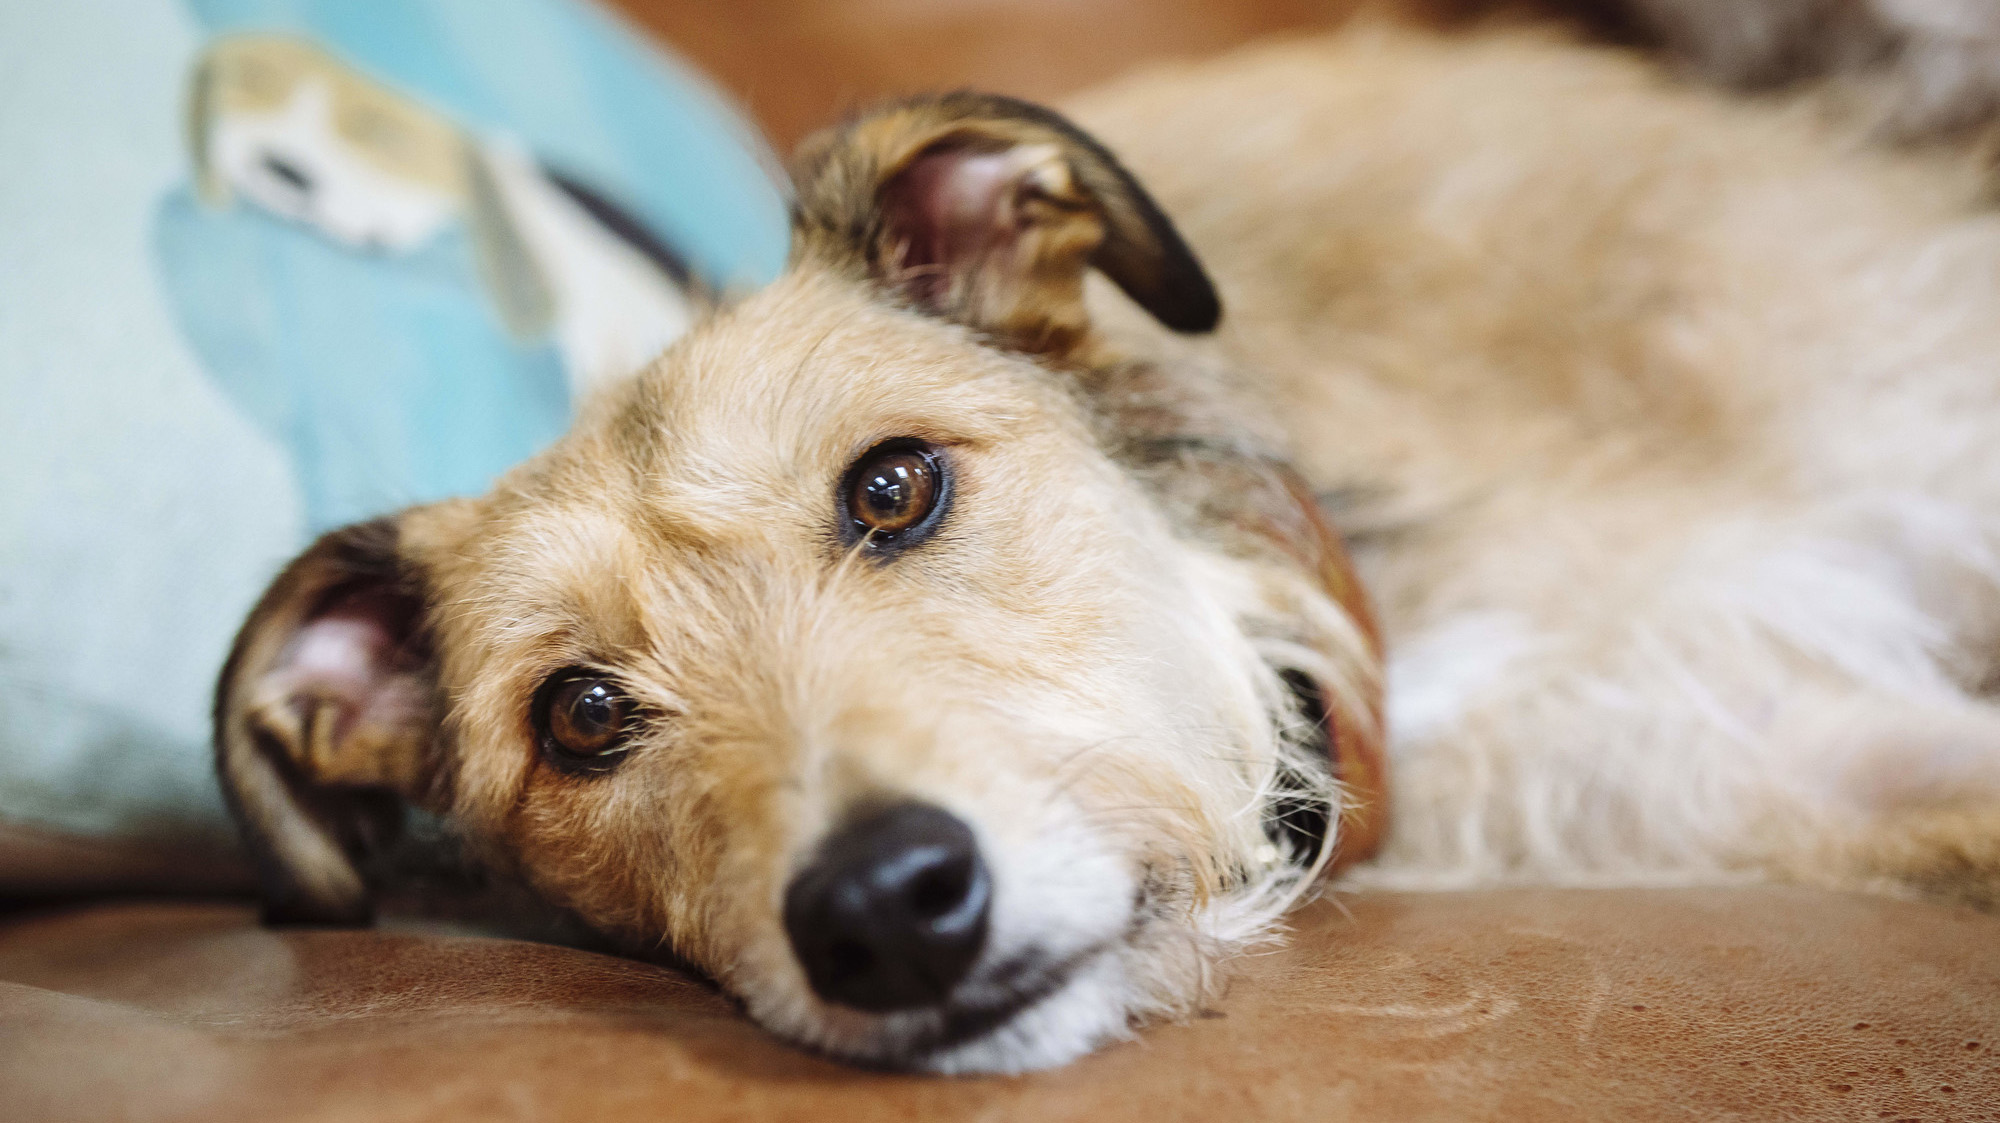 Why has my dog been sick? | Blue Cross